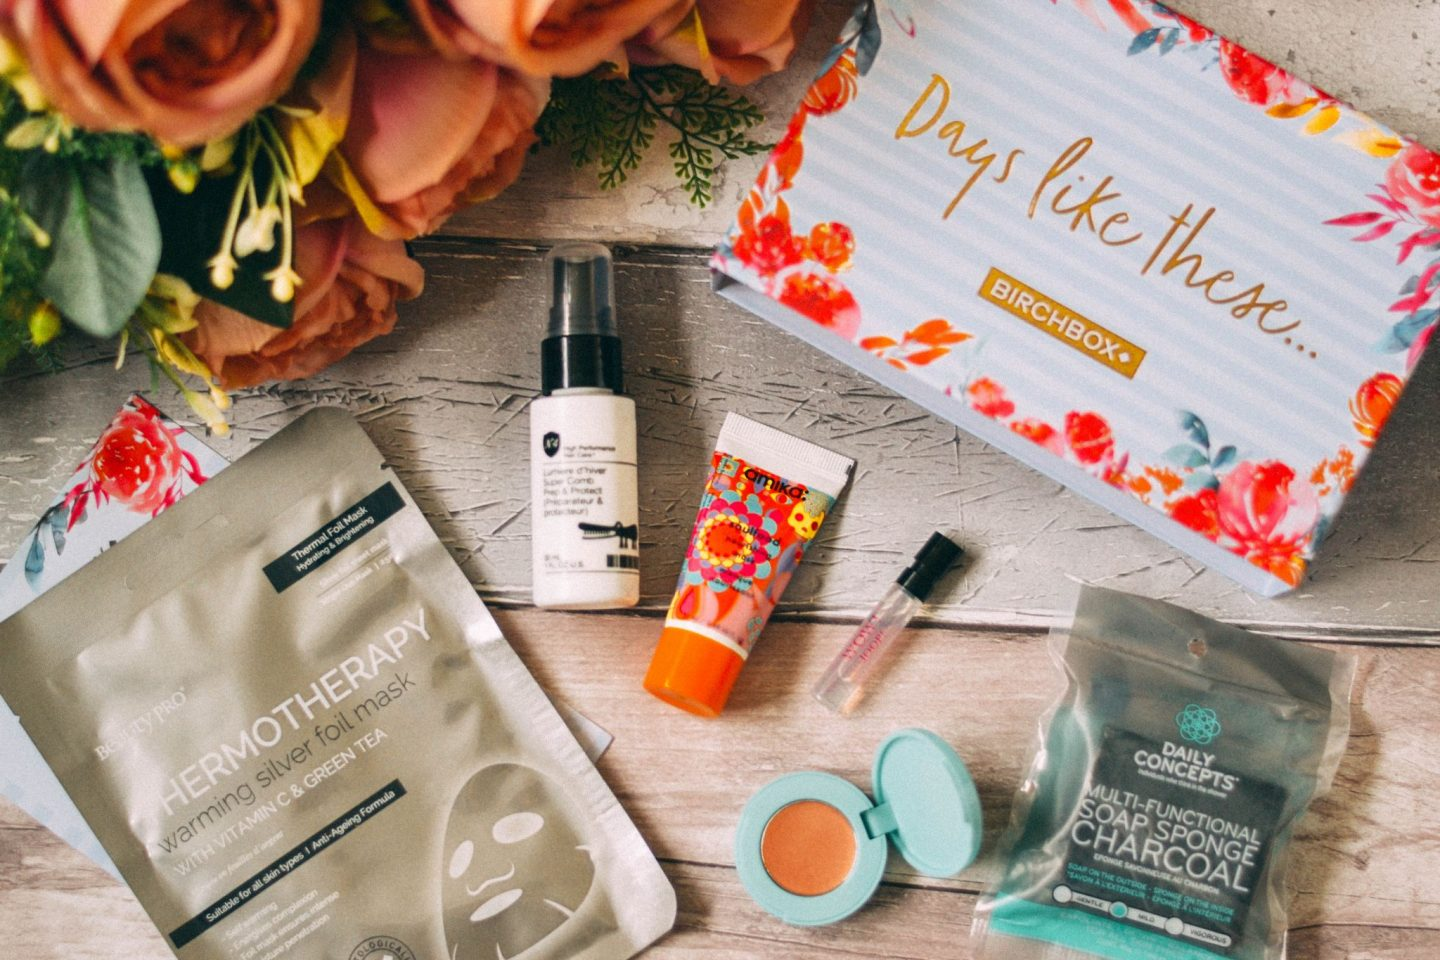 Days Like These with Birchbox